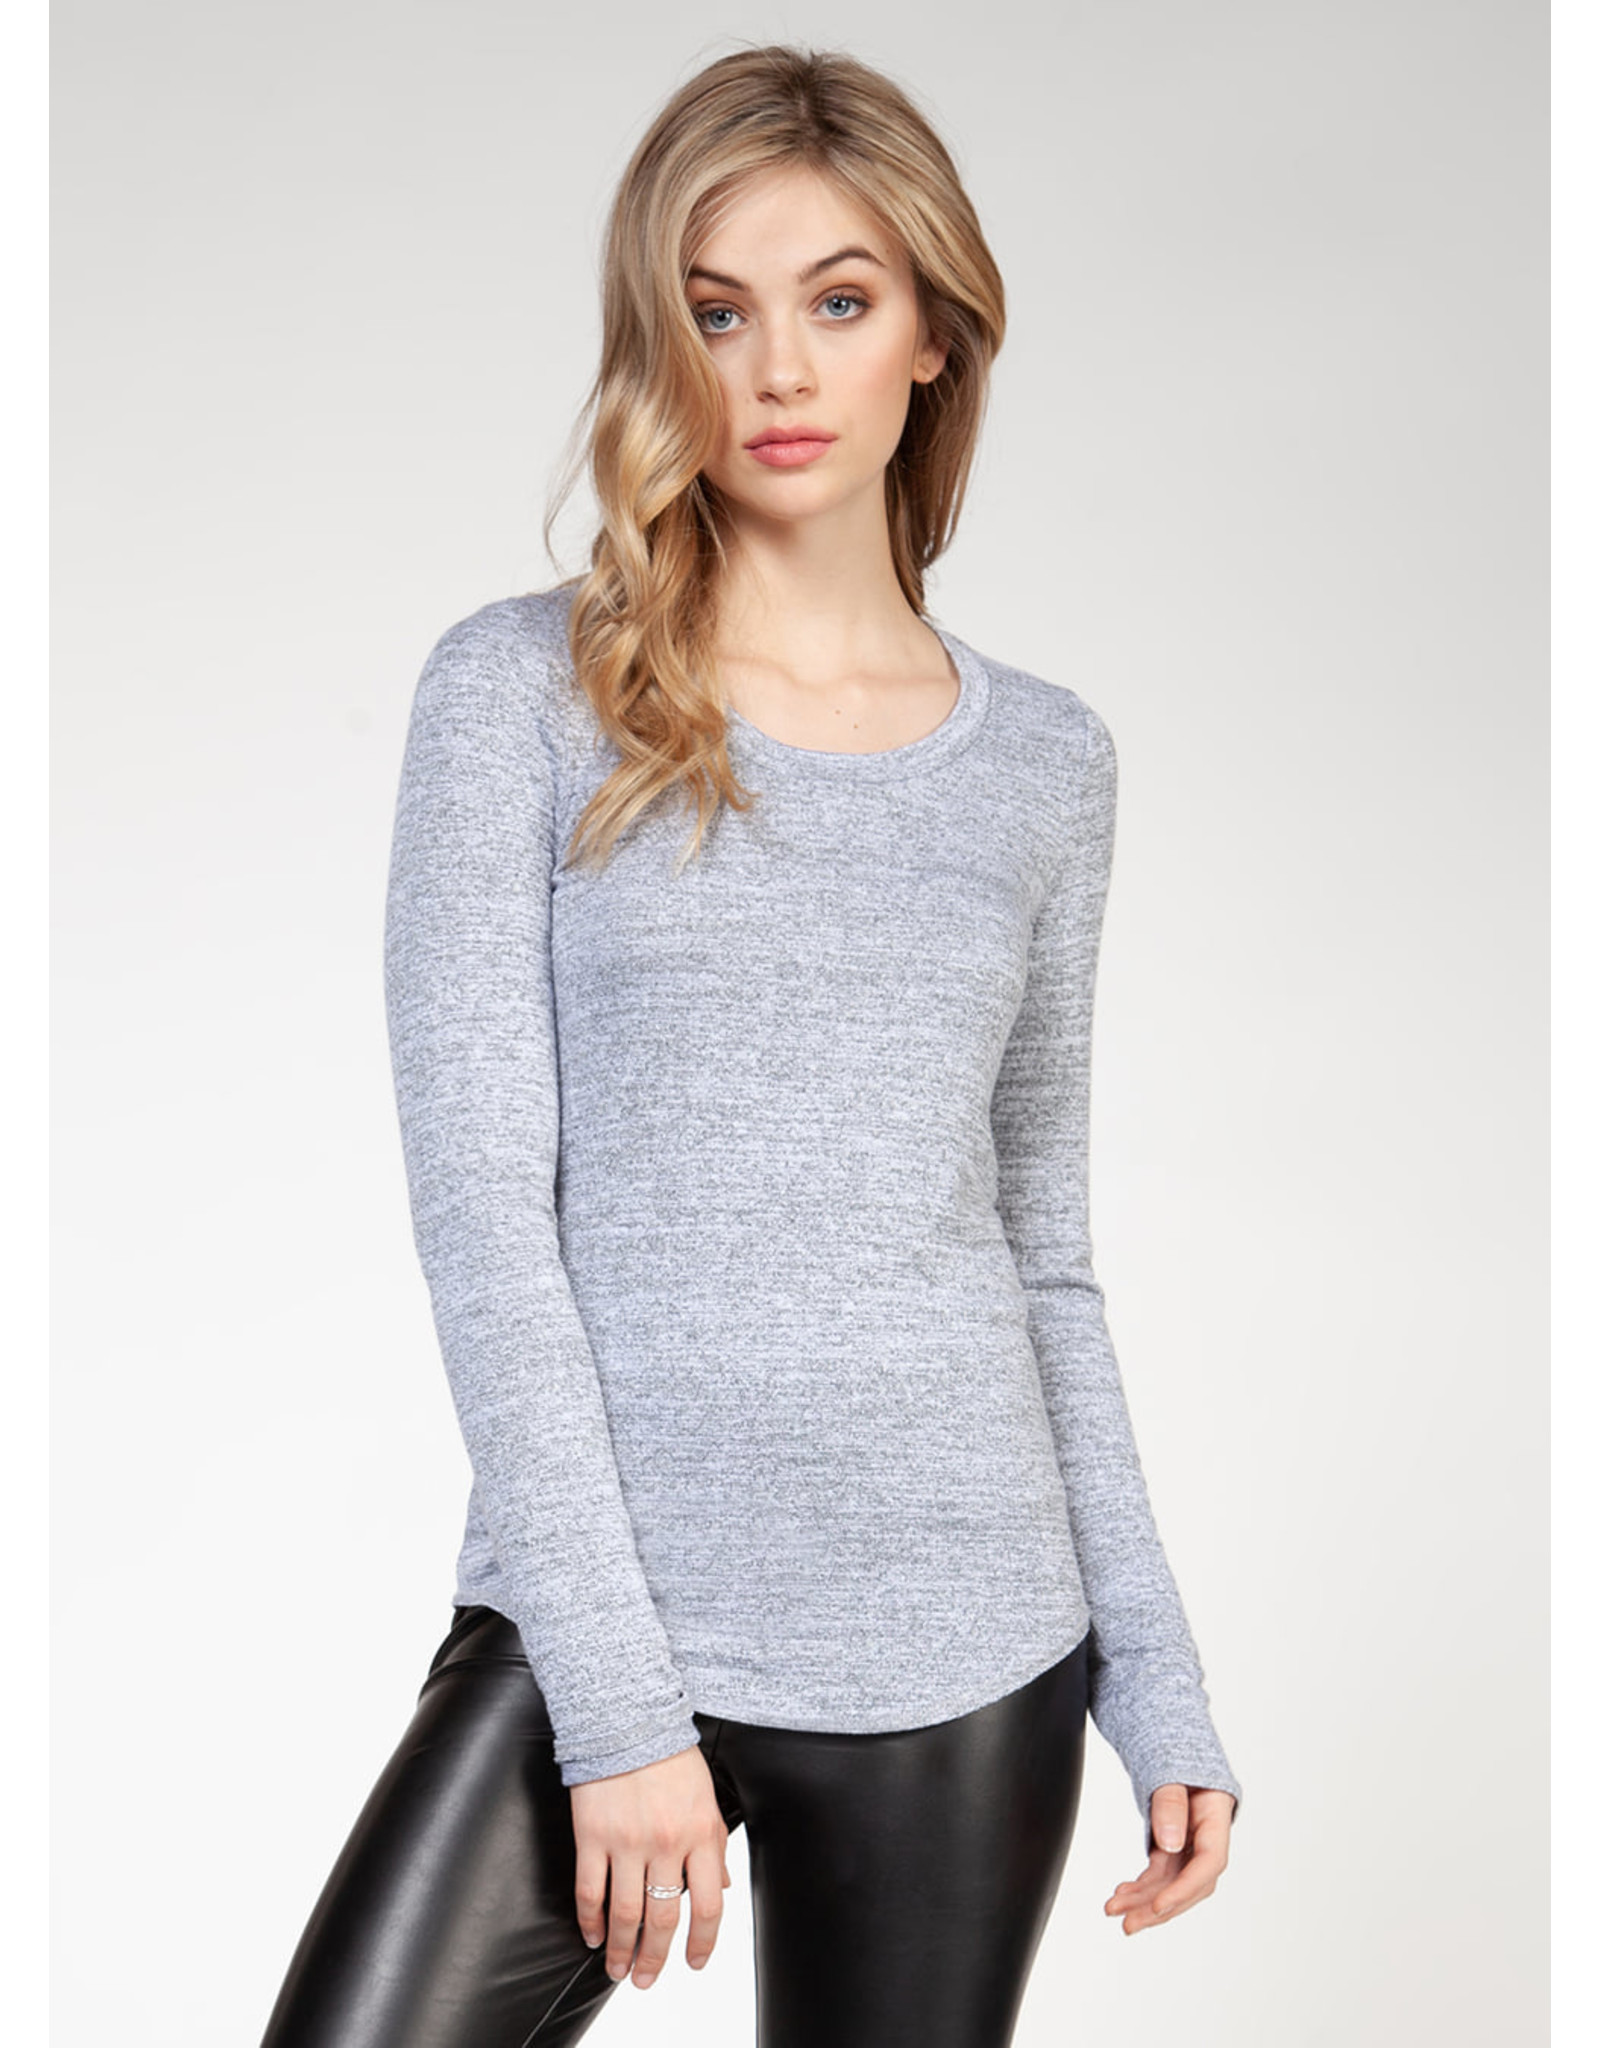 CHANDAIL MANCHE LONGUIE BASIC GRIS